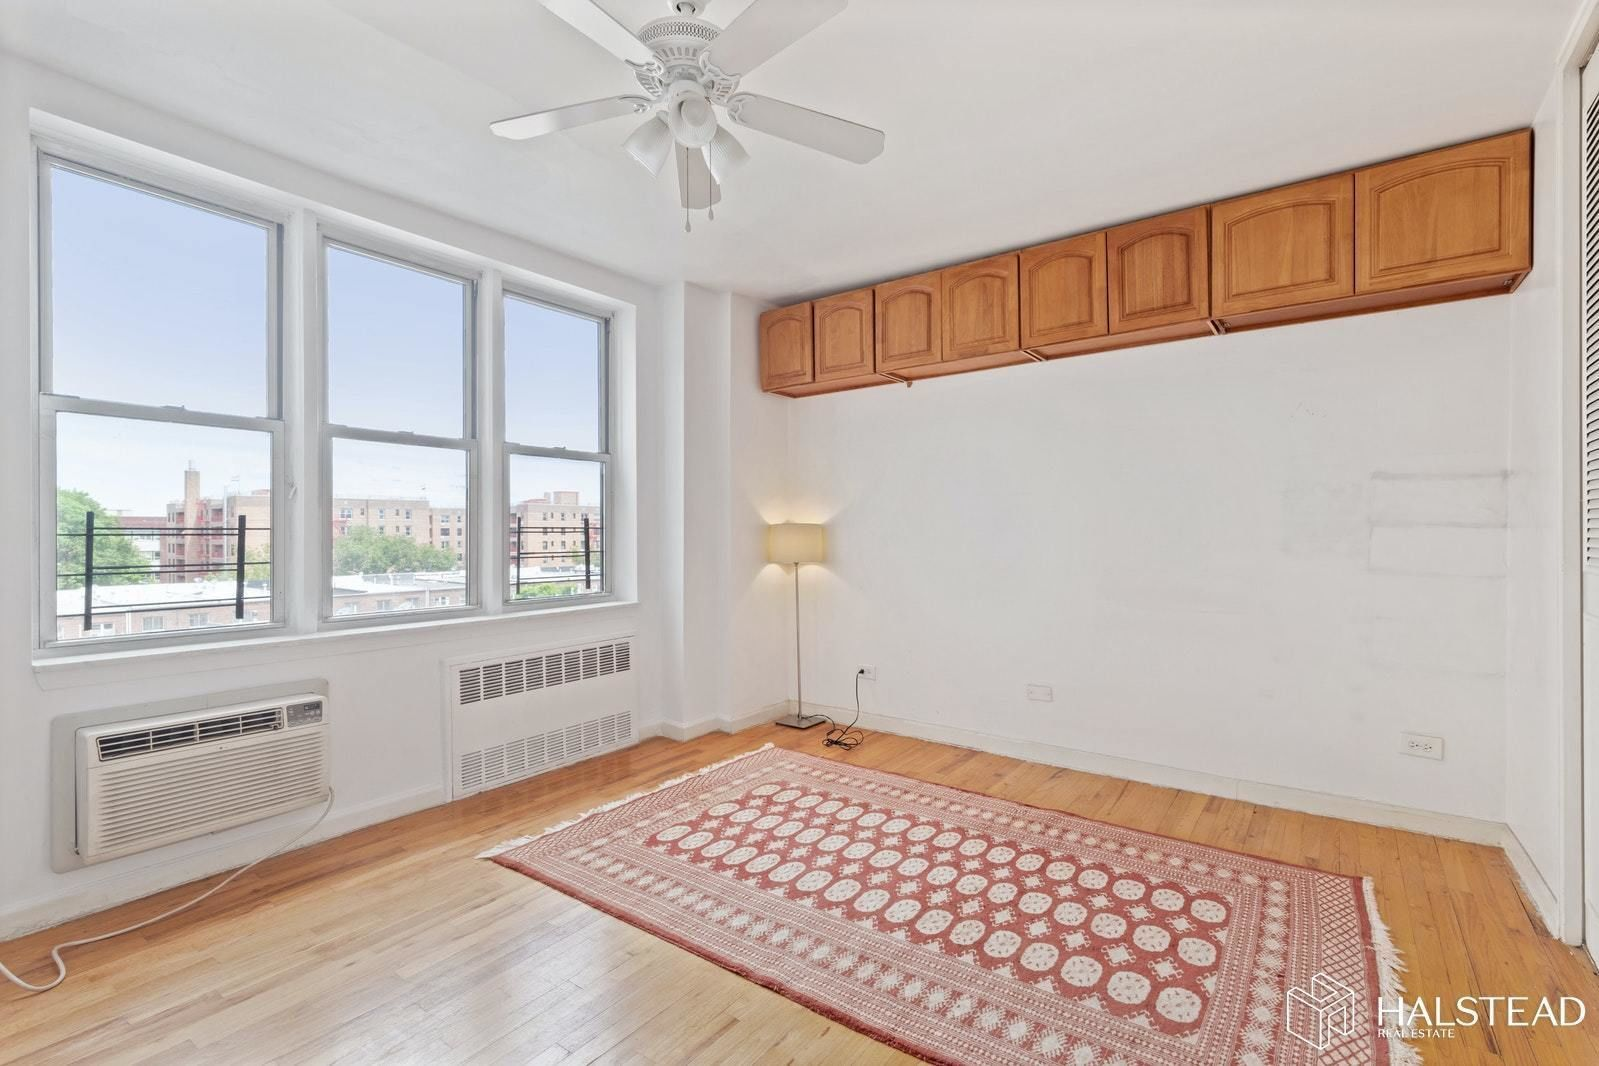 Apartment for sale at 94-11 59th Avenue, Apt F29